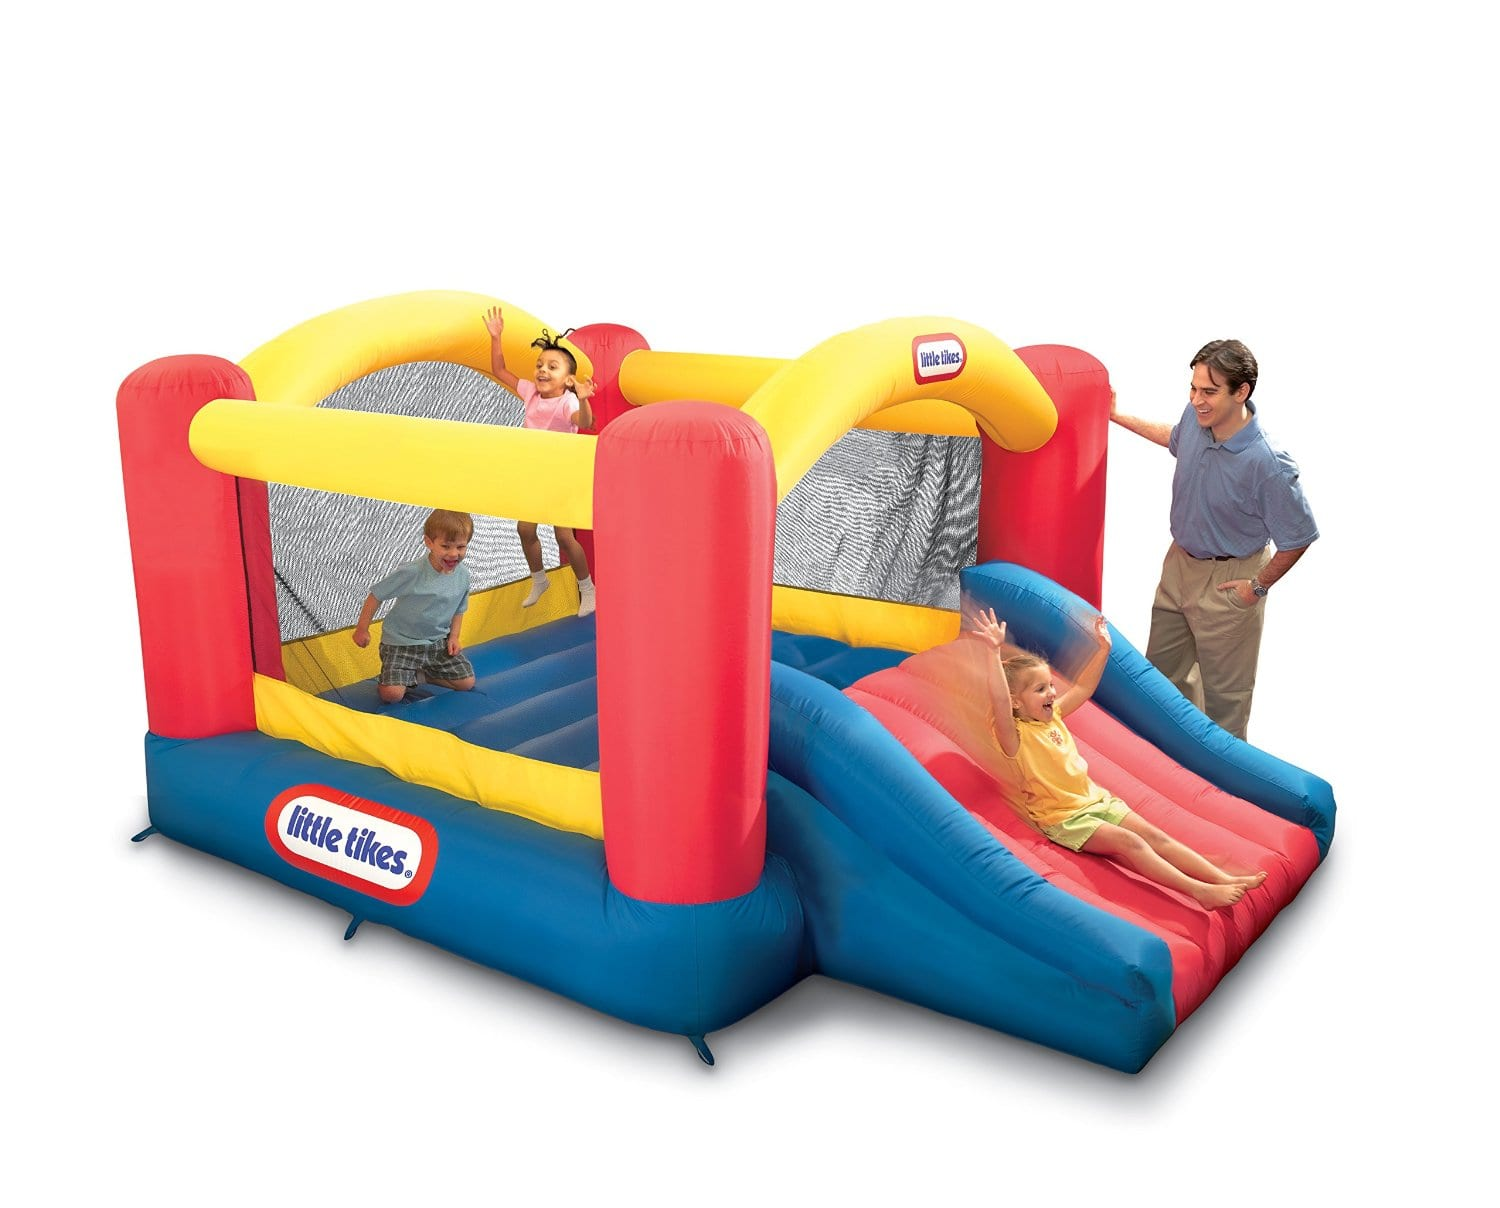 Little Tikes Jump 'n Slide Bouncer $149+Free shipping Amazon & Walmart